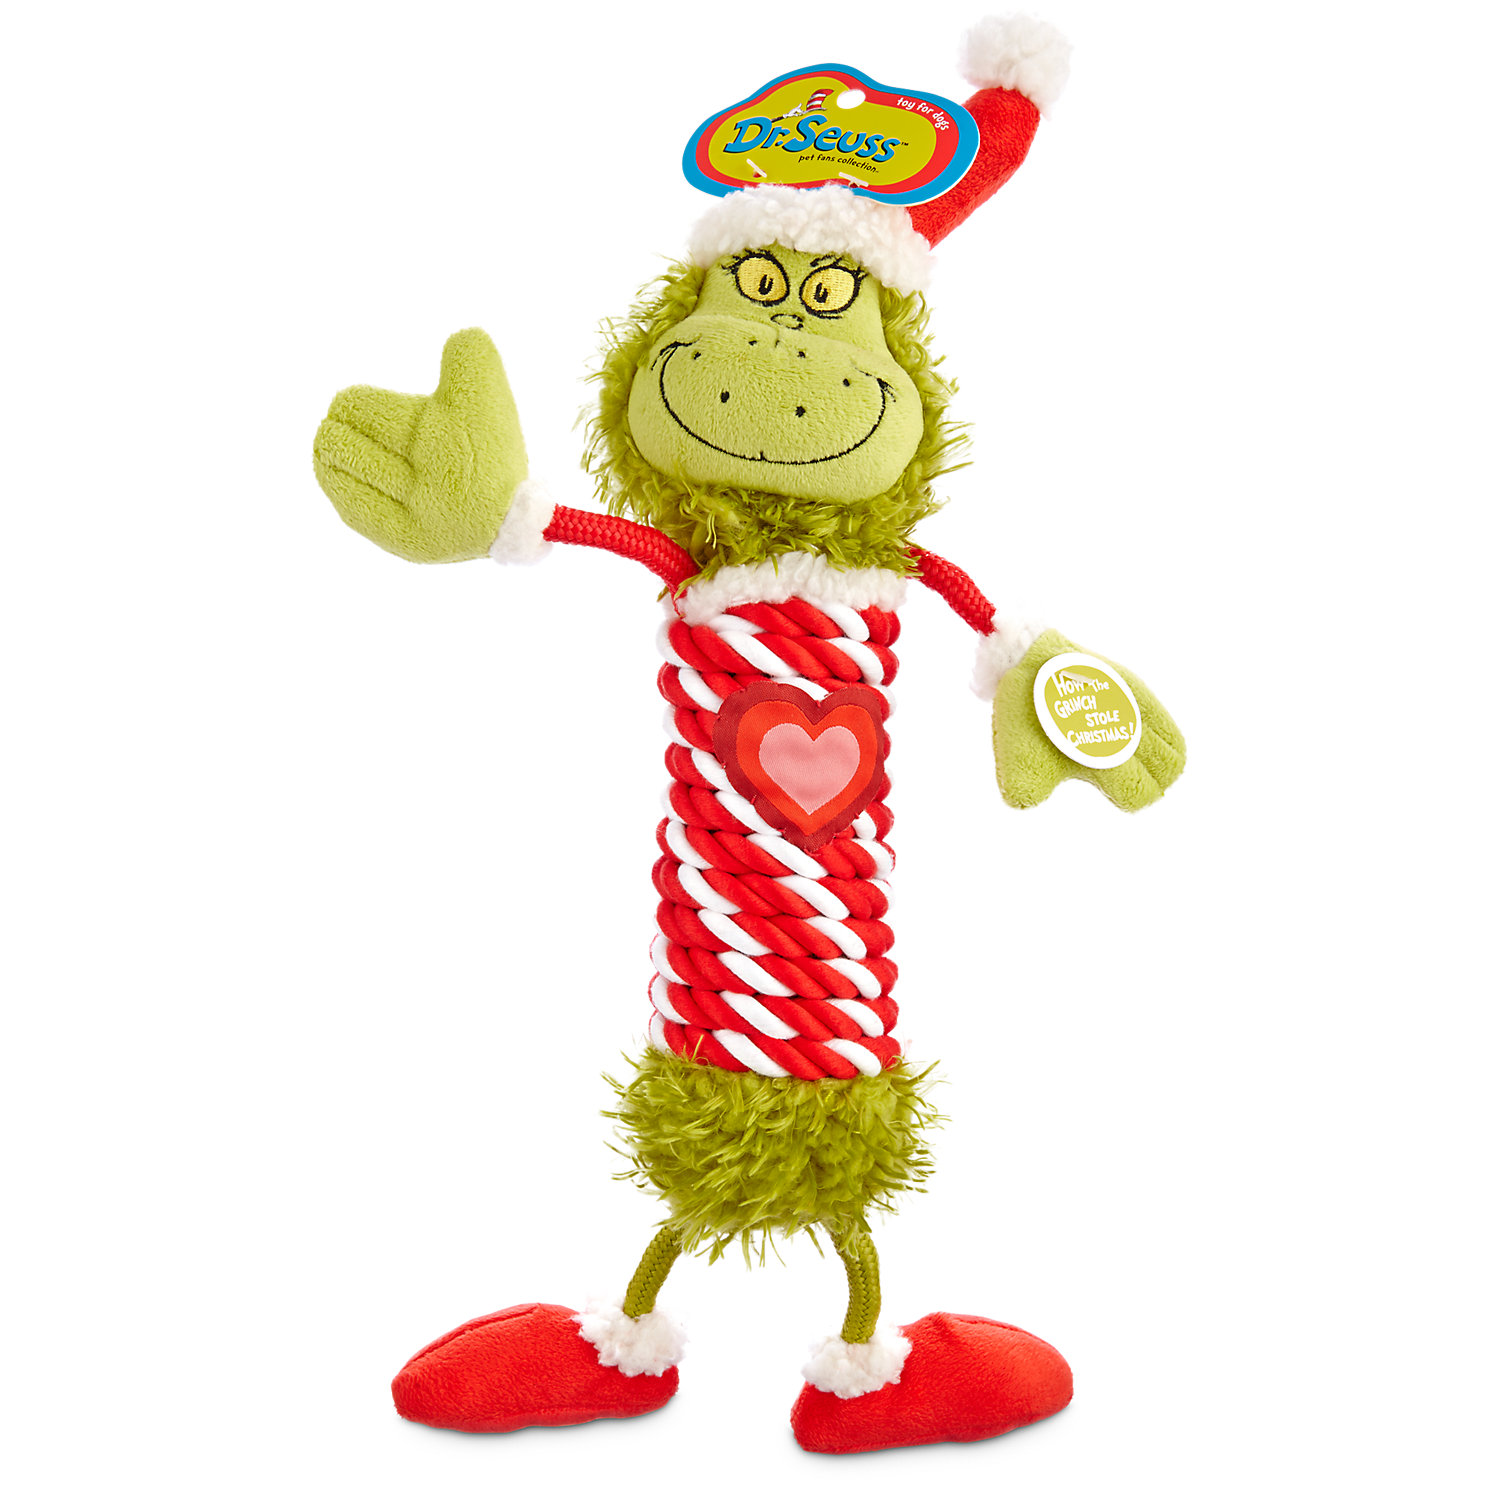 Dr. Seuss How The Grinch Stole Christmas Grinch With Rope Body Dog Toy, Large, Multi-color